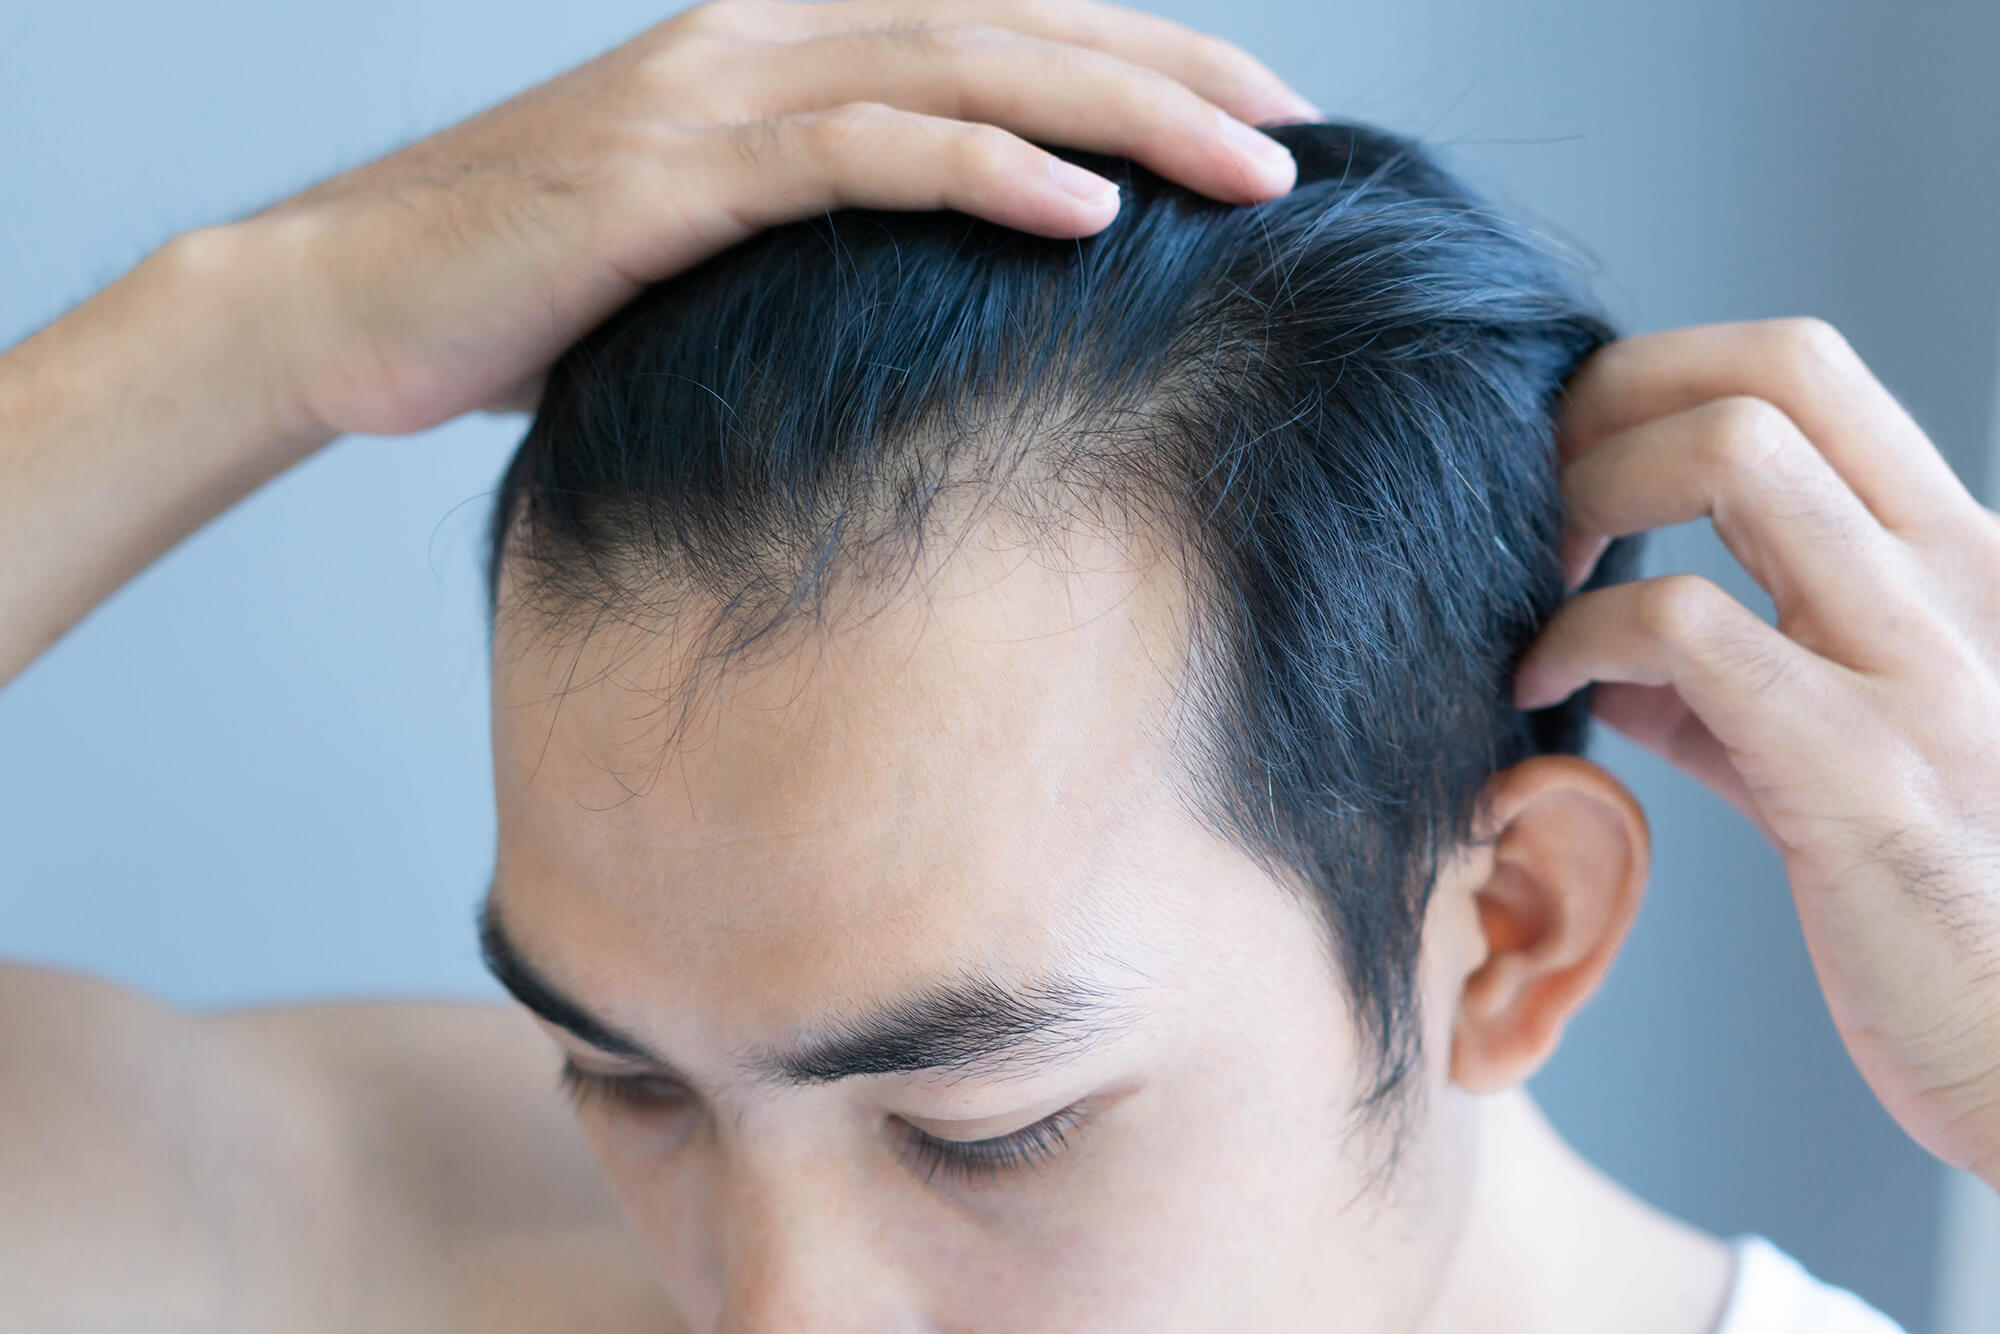 A man pushing his hair back to show his receding hairline